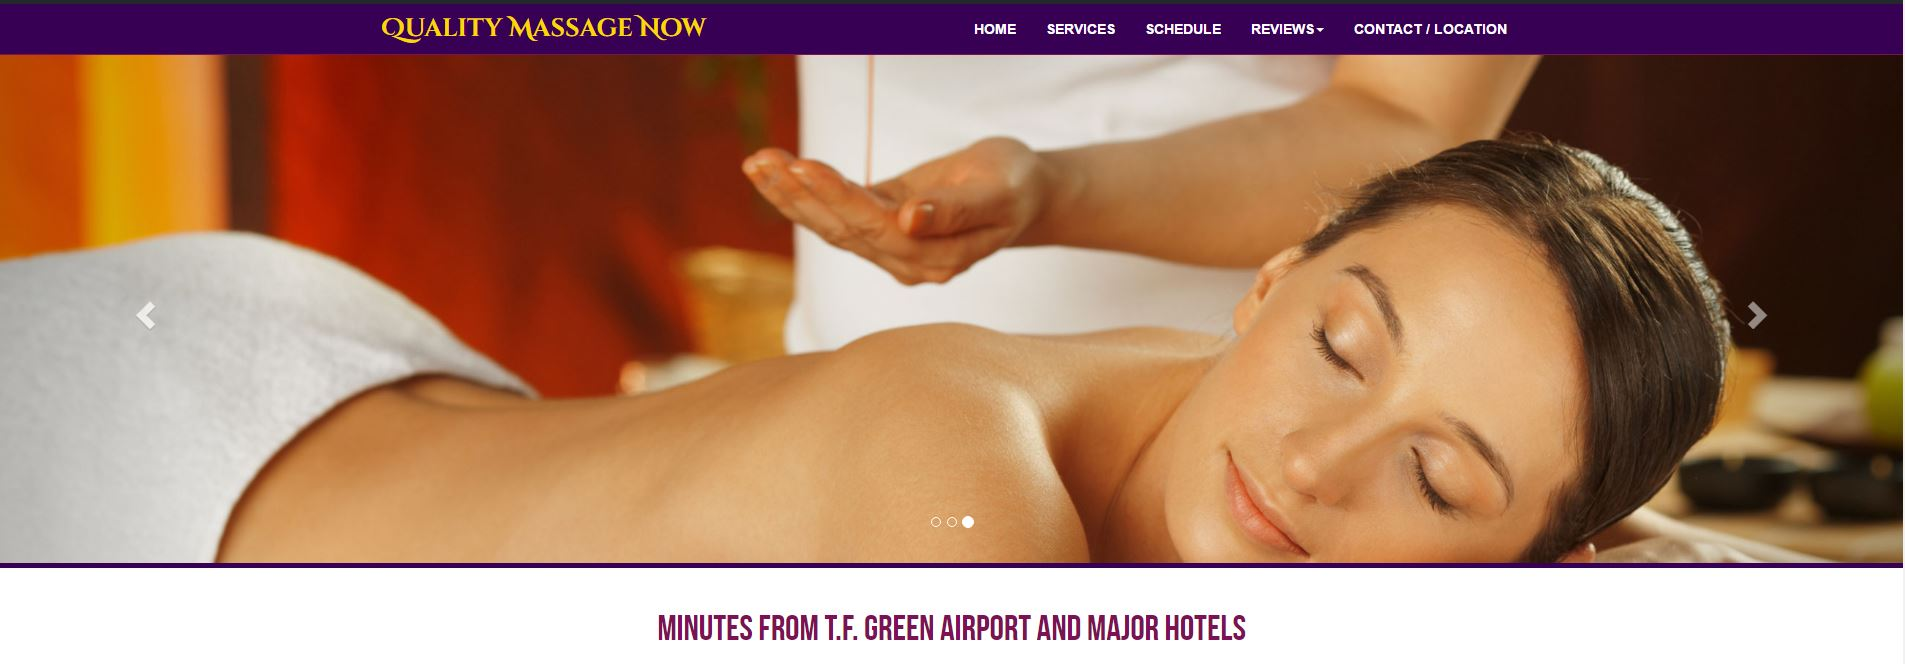 Snapshot of Quality Massage Now website newly rebuilt on a Wordpress Platform with a new online booking system.